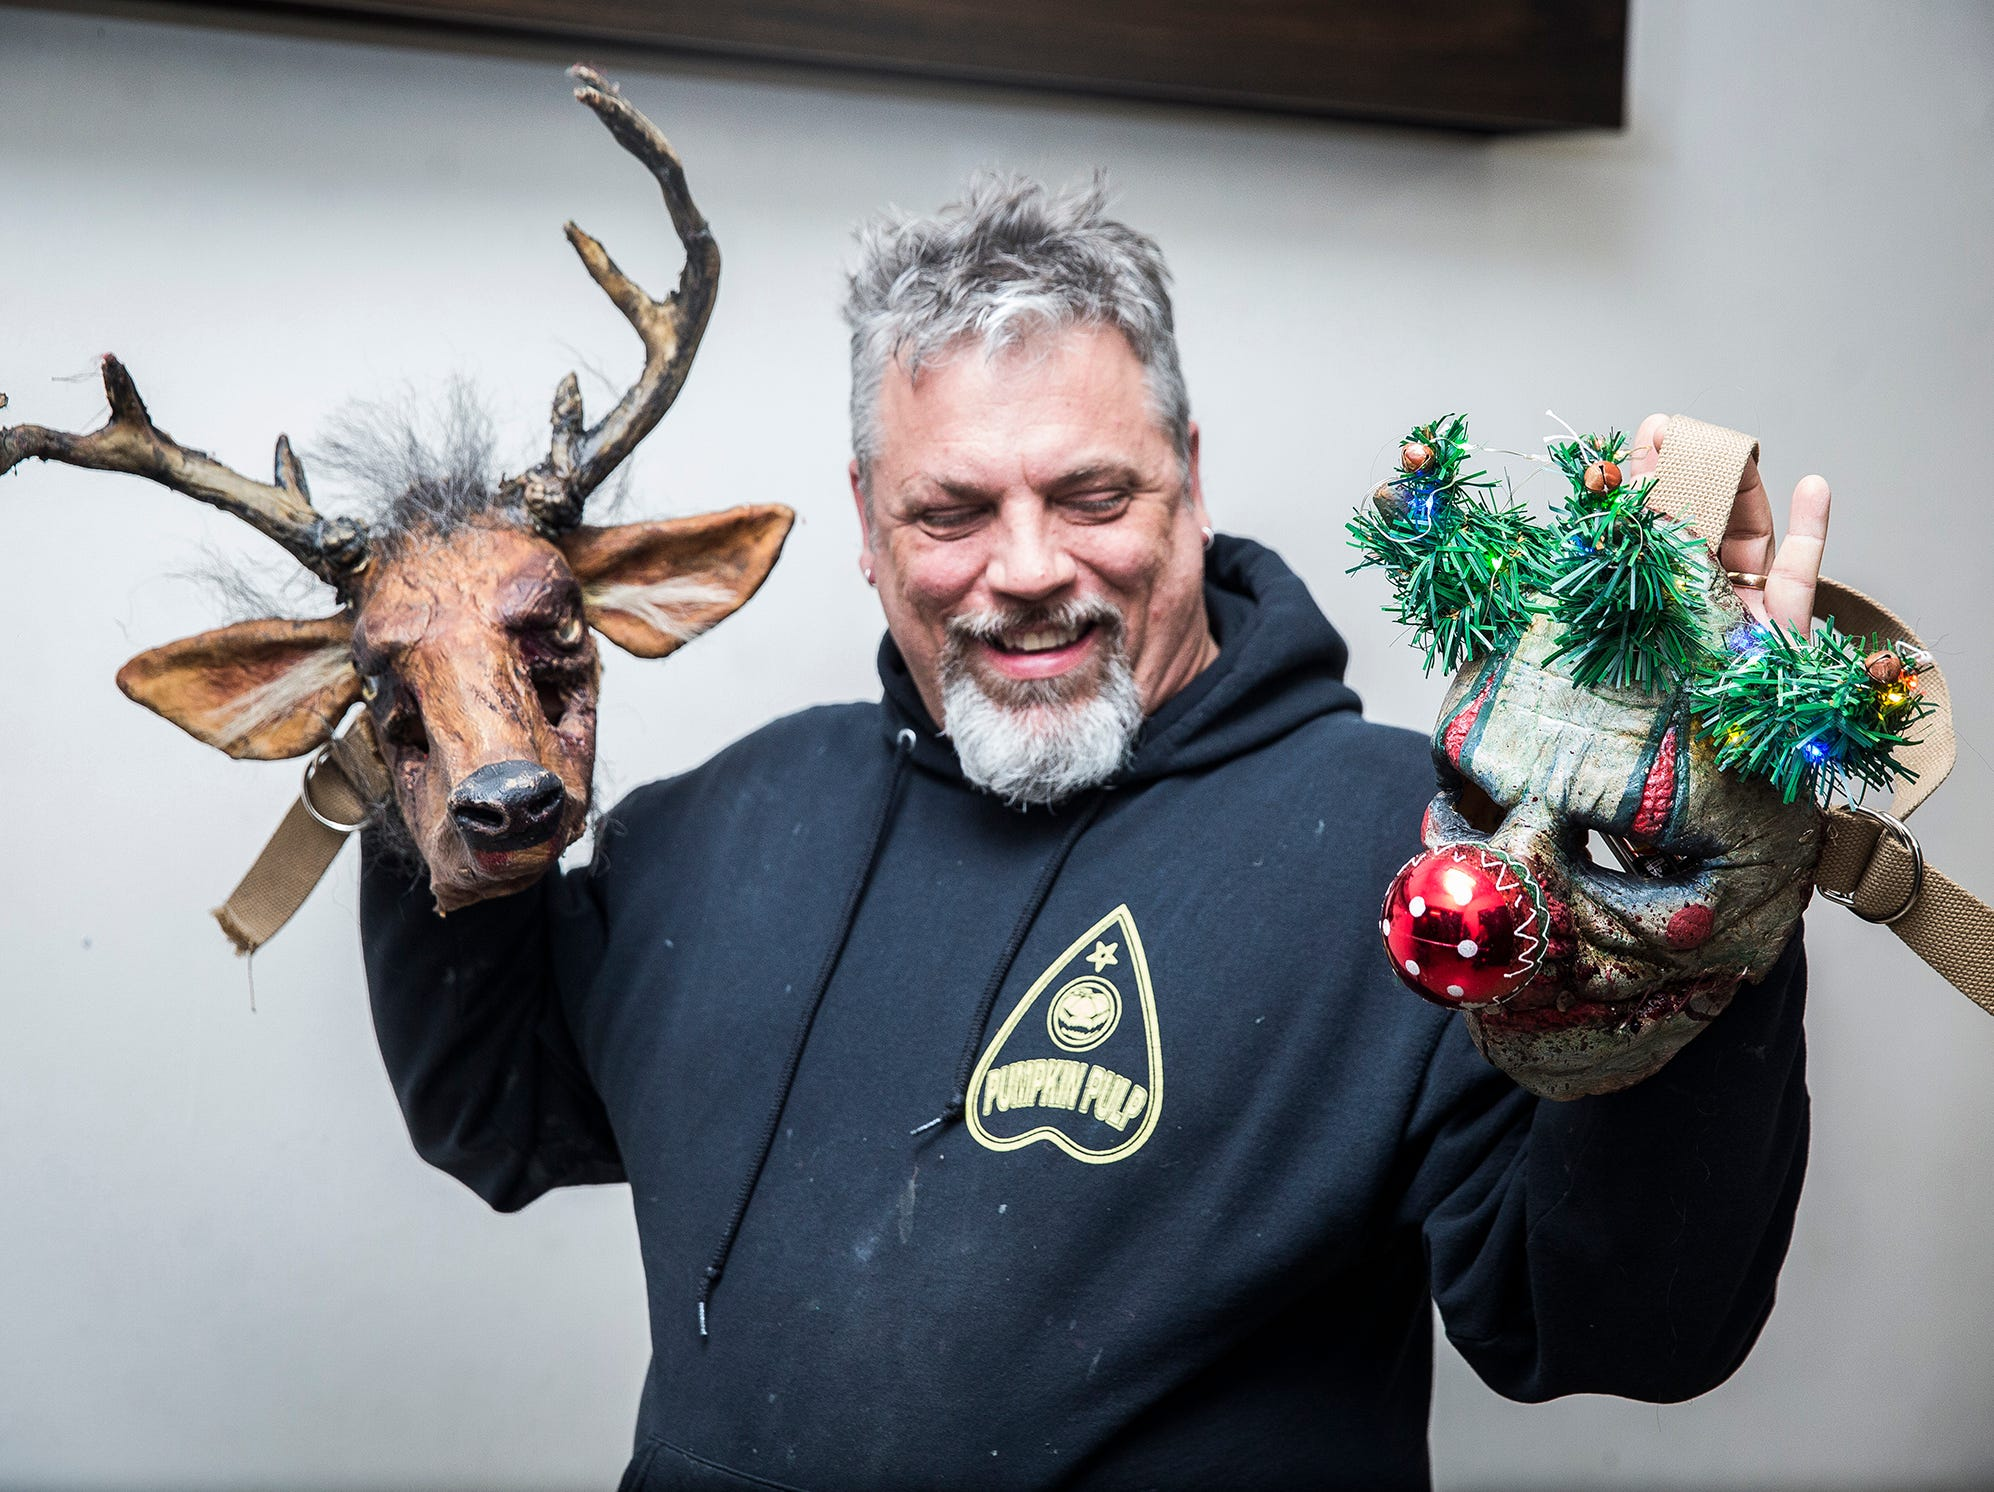 Brian Blair holds Christmas-themed horror masks at Cornerstone which will be the home of the Christmas Scarol haunted house on Dec. 15.